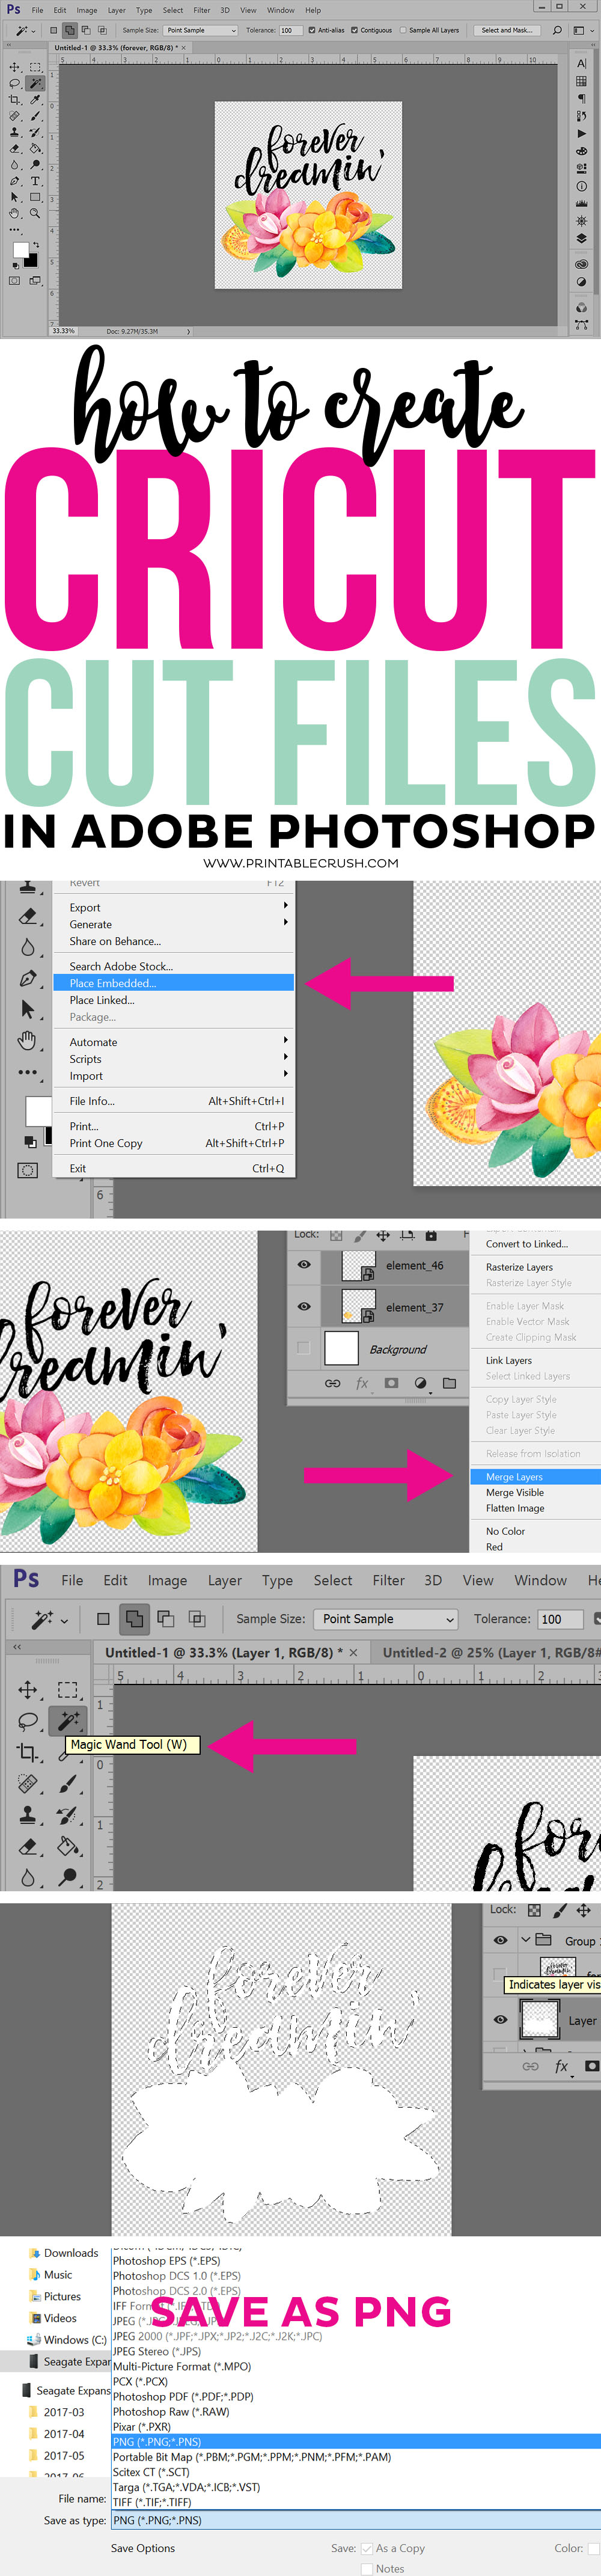 Step-by-step collage of how to use Photoshop to make Cut files